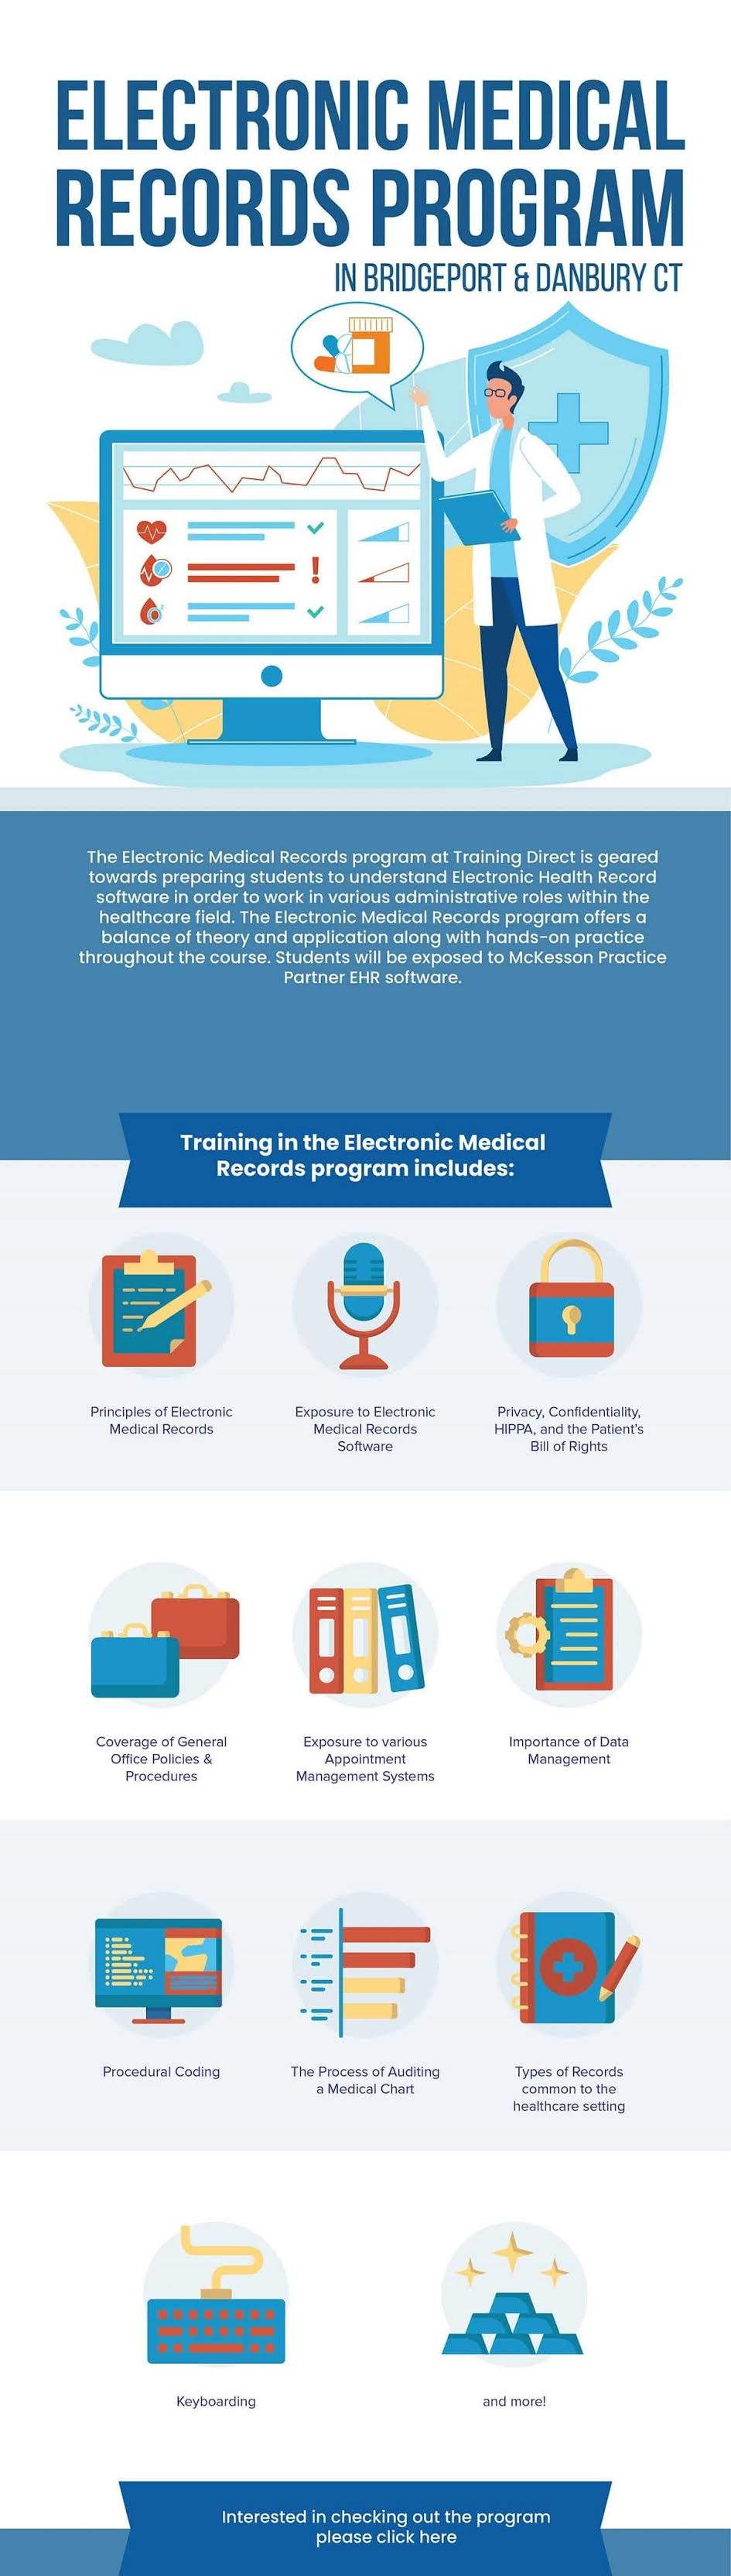 Electronic Medical Records Program in Bridgeport & Danbury CT #infographic